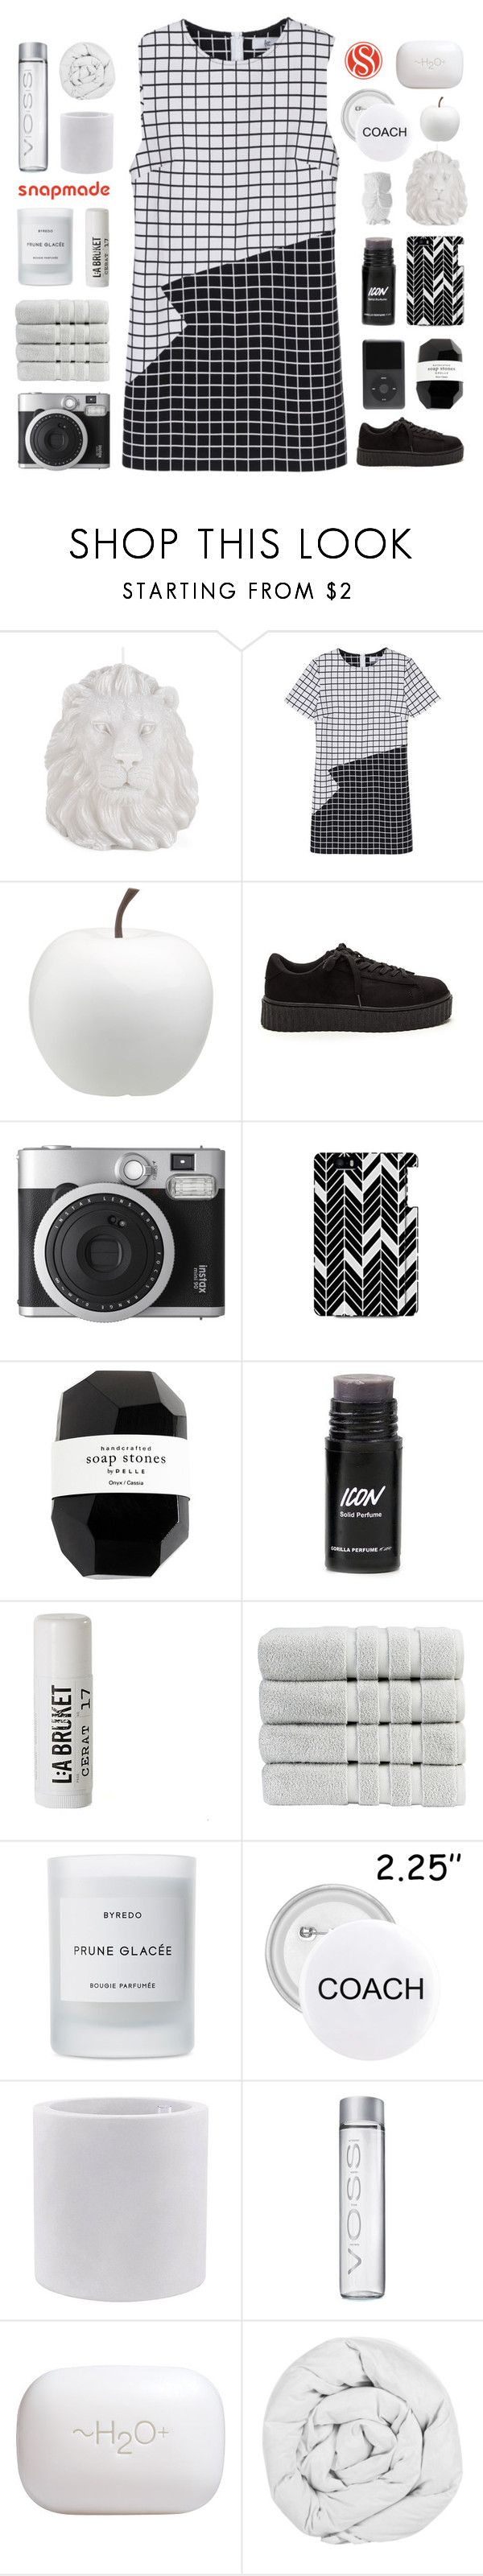 """SNAPMADE // I'M MORE HONEST THAN I WANT."" by gintare-13 ❤ liked on Polyvore featuring Zara Home, CB2, Fujifilm, Cassia, L:A Bruket, Christy, Byredo, Vondom, H2O+ and The Fine Bedding Company"